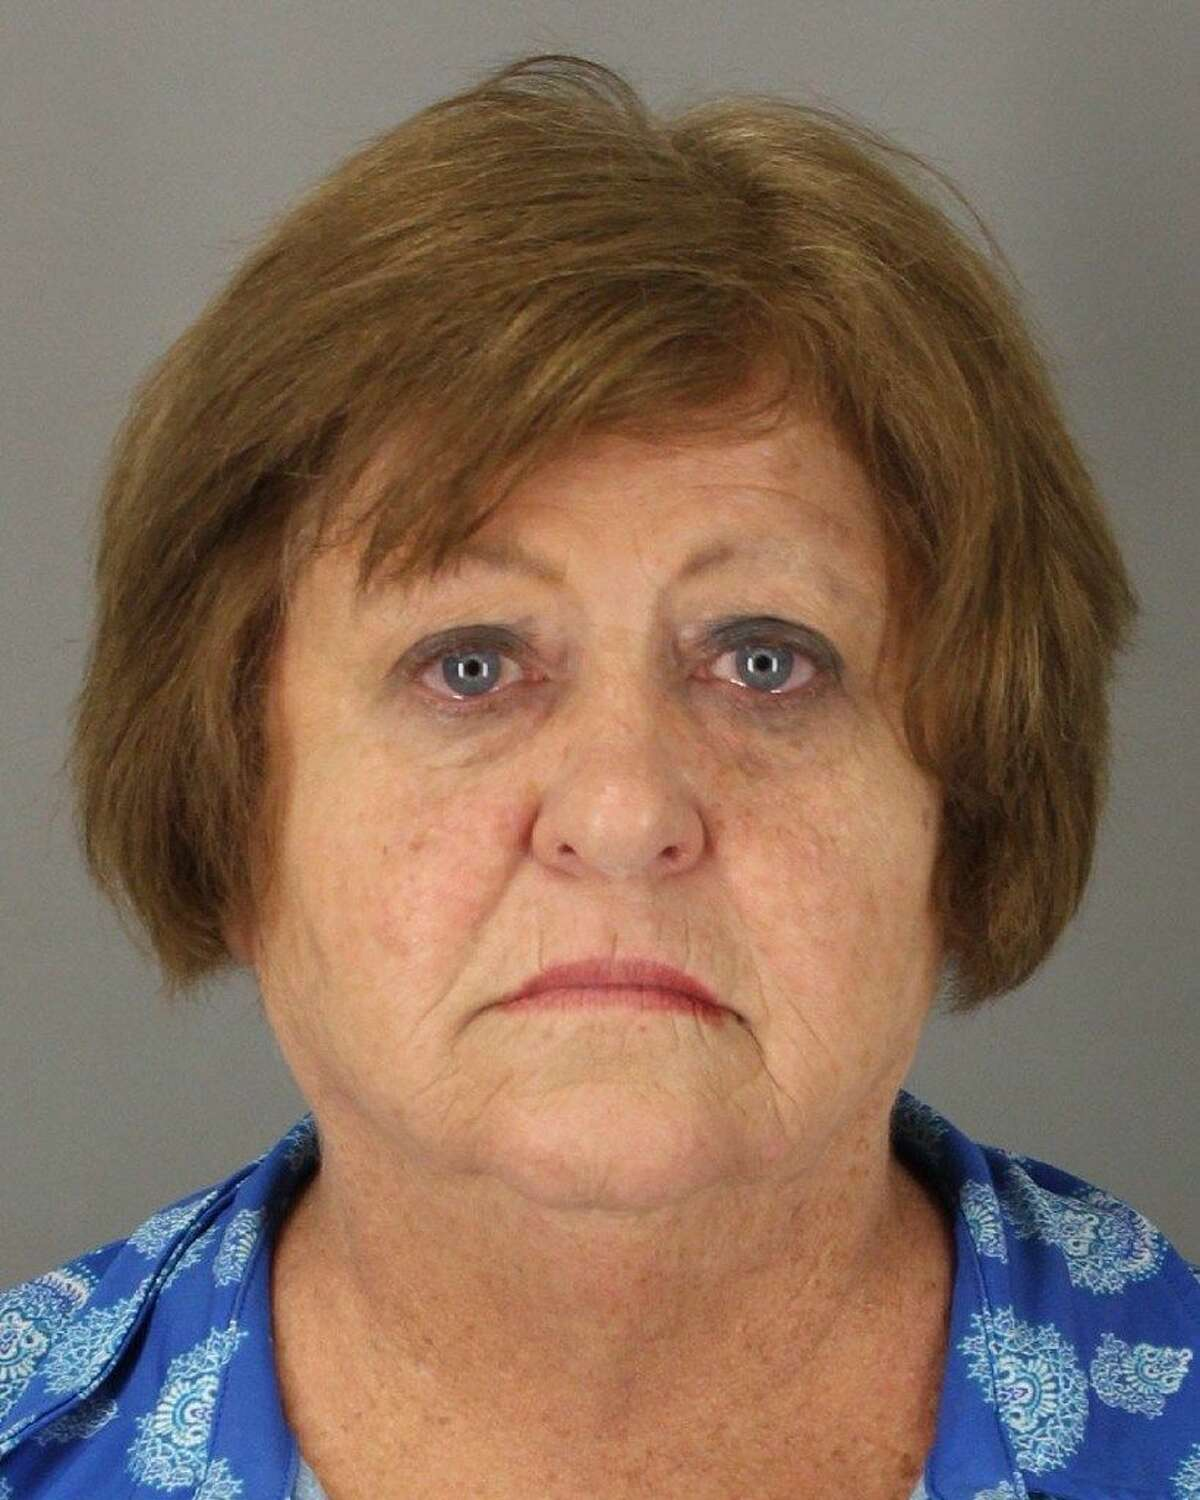 Ozen High School teacherMaryHastings, 63, was arrested Friday and charged with misdemeanor assault after a video surfaced showing her repeatedly striking a student.Hastingswas released after posting a $2,500 bond.